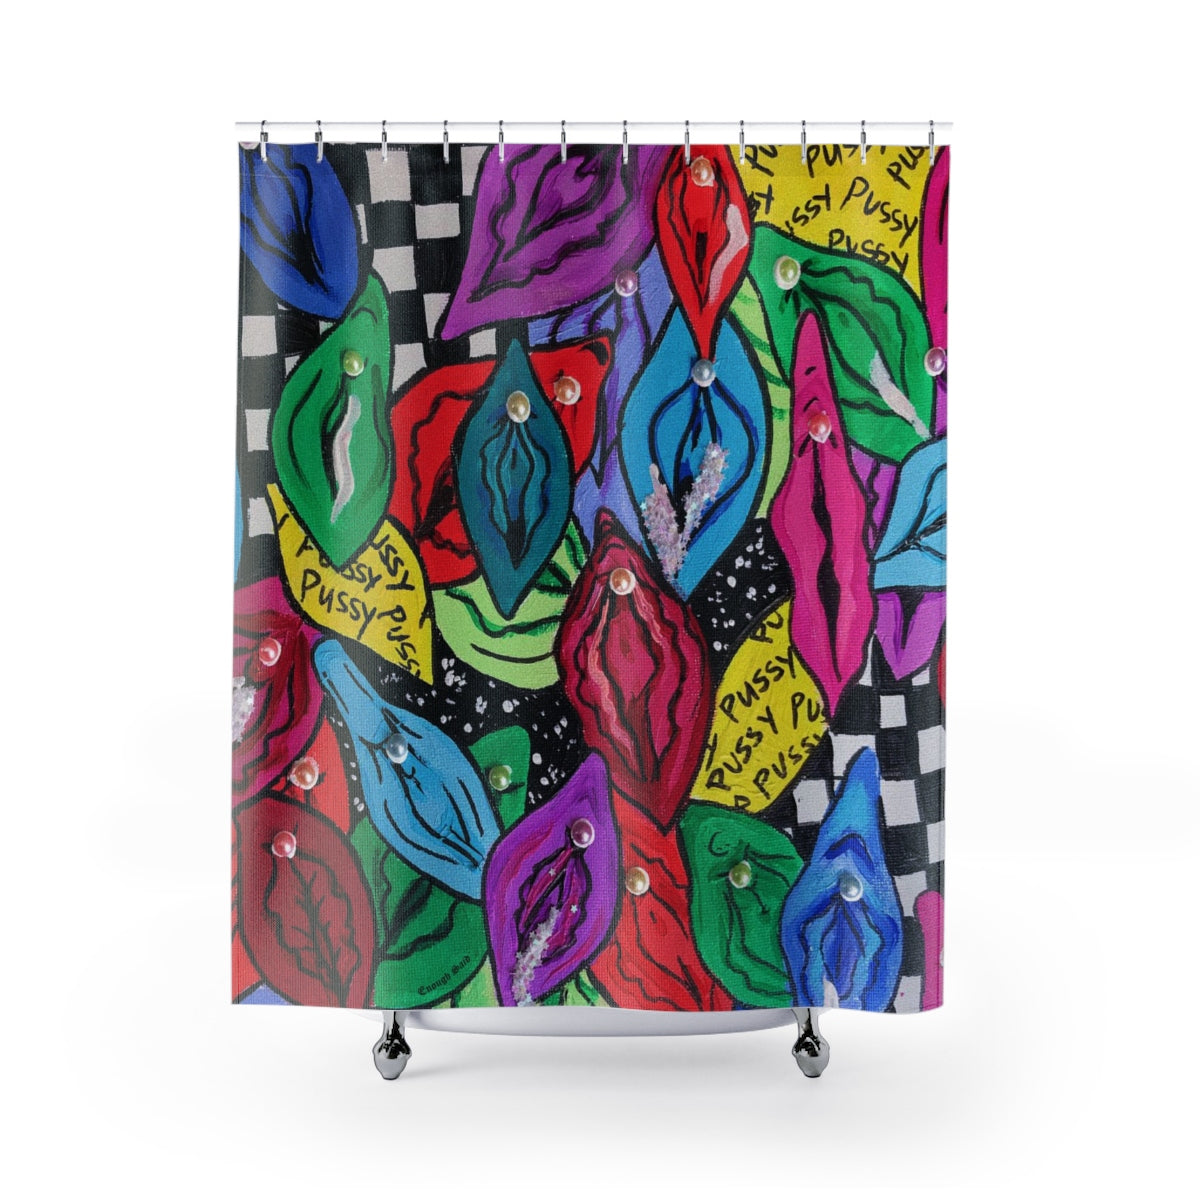 Shower Curtain / Tapestry - Pearl